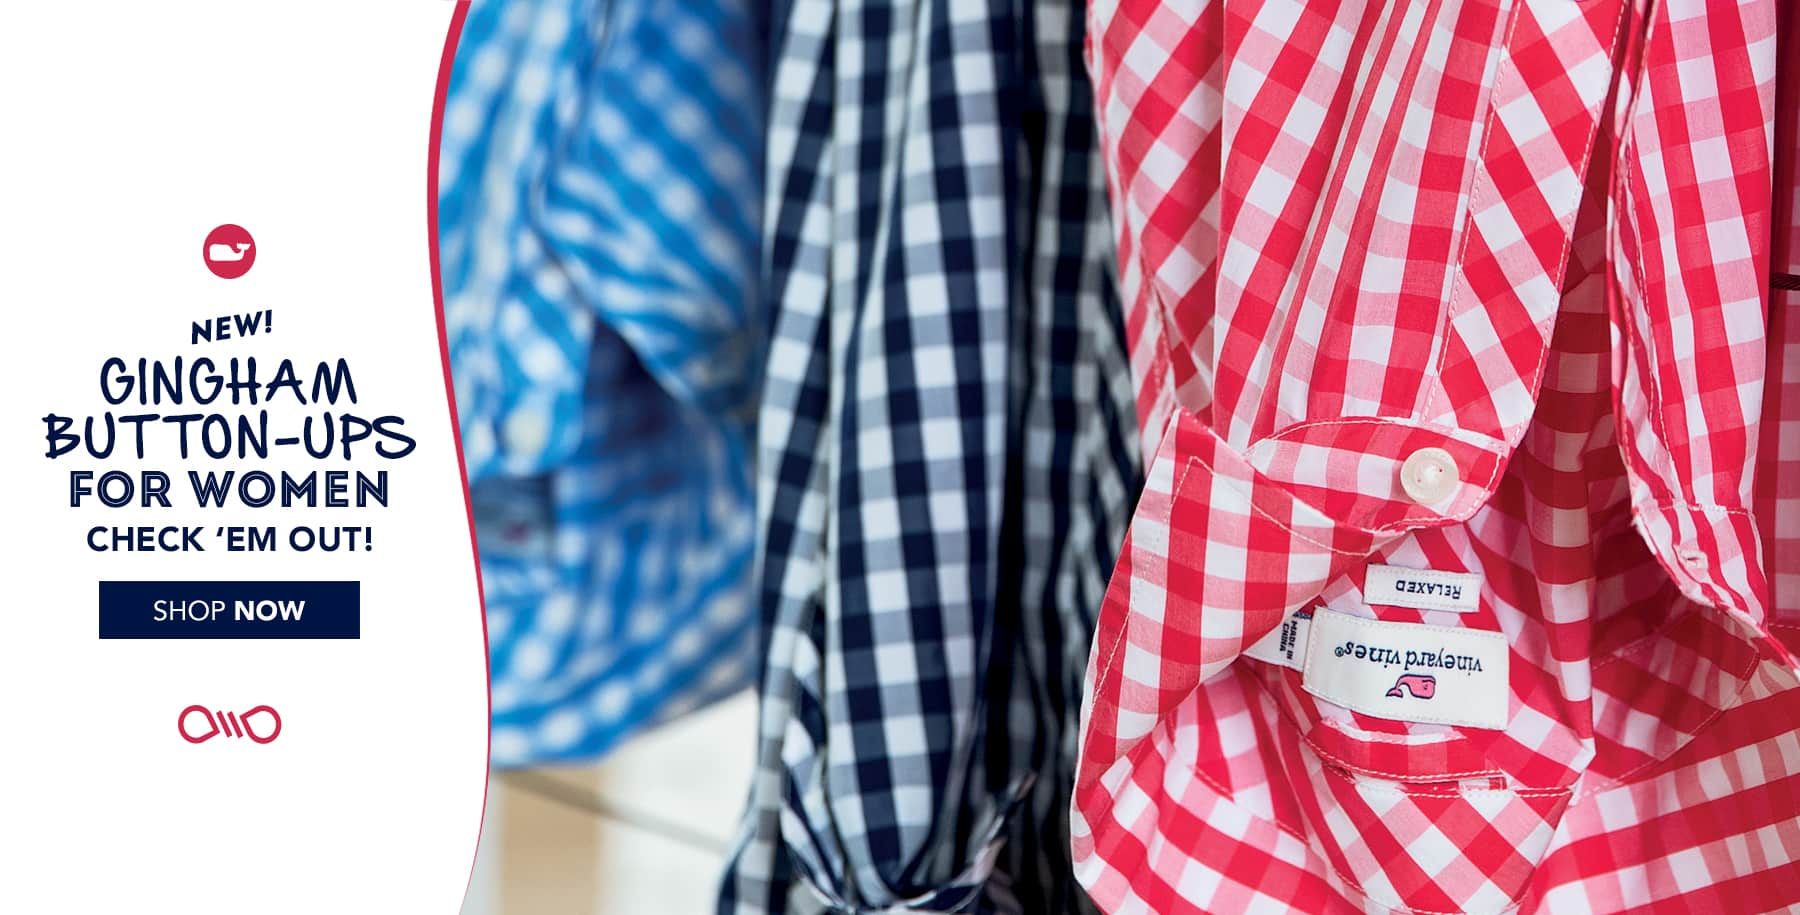 New! Gingham Button-Ups for women. Shop now.